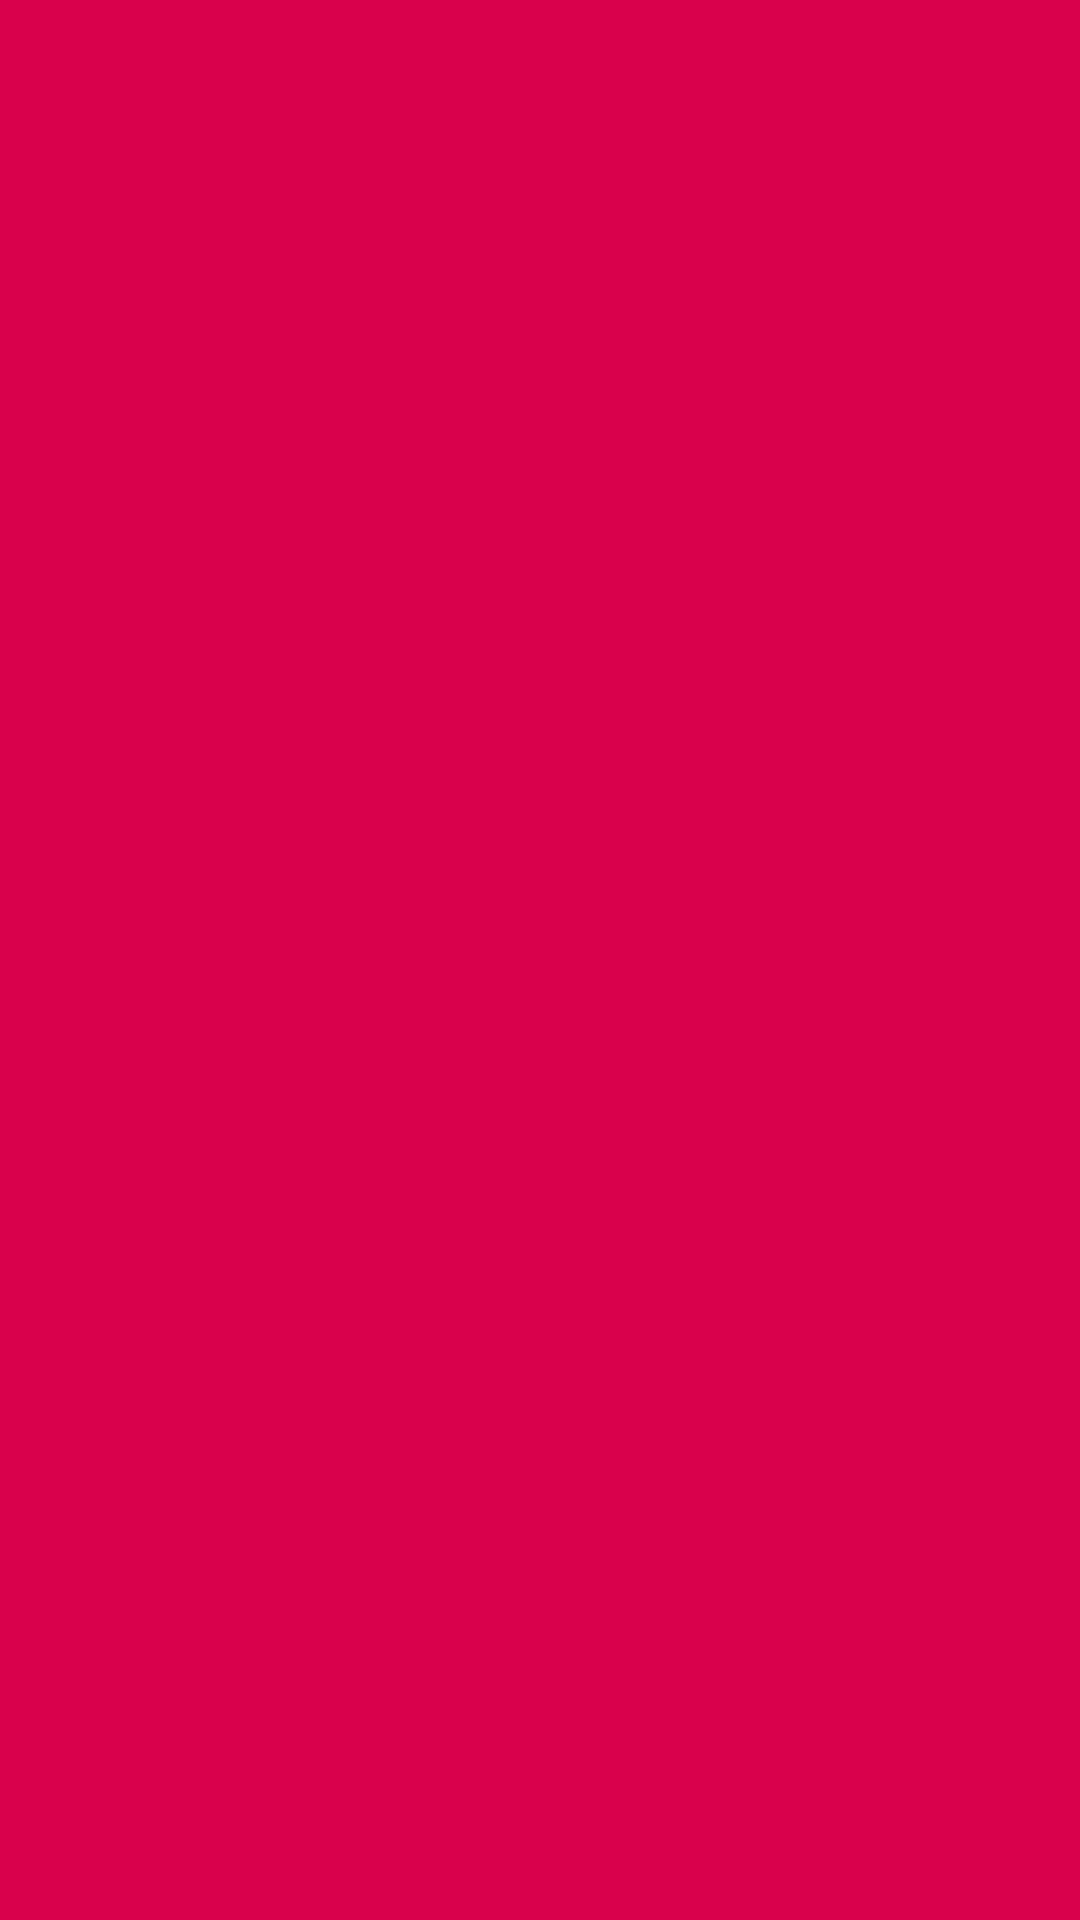 1080x1920 UA Red Solid Color Background